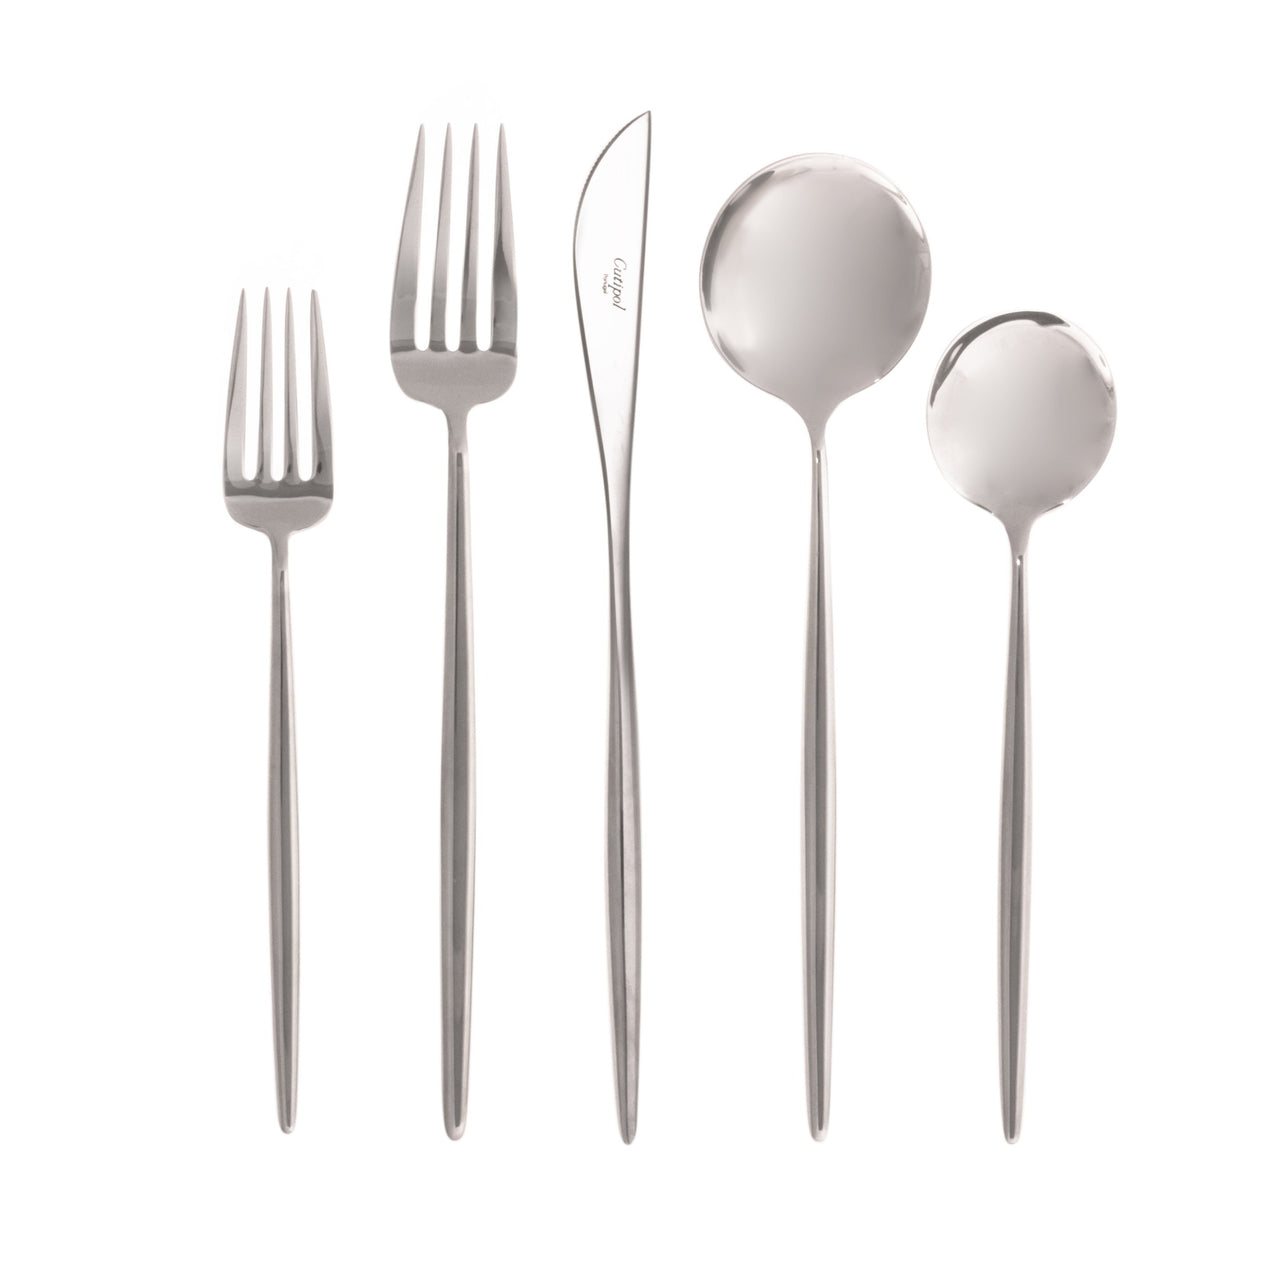 Moon Flatware: Polished Steel: Single 5-pc Set